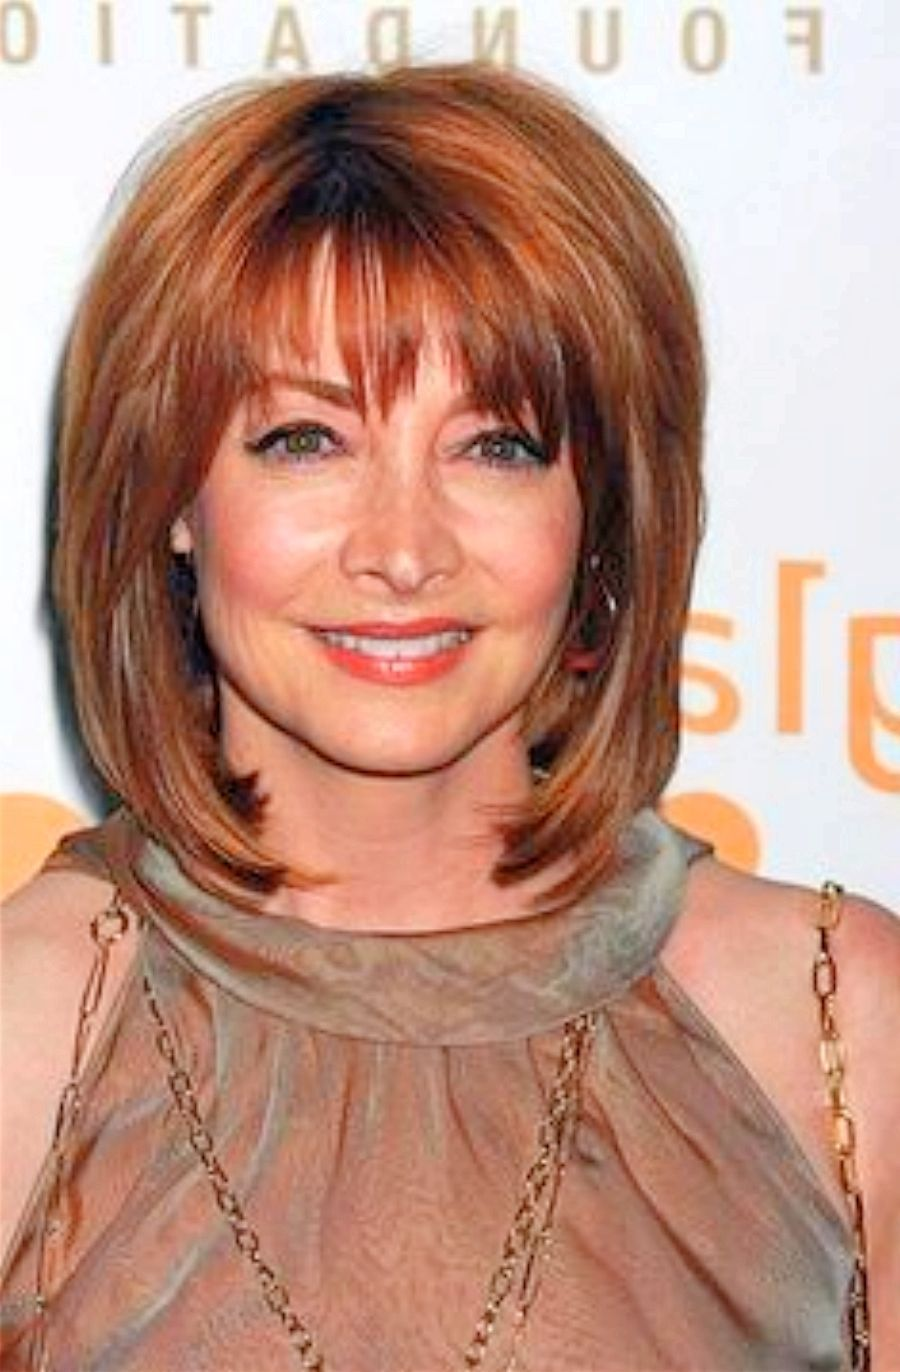 Medium Length Hairstyles For Women Over 60 | Bangs | Pinterest ...